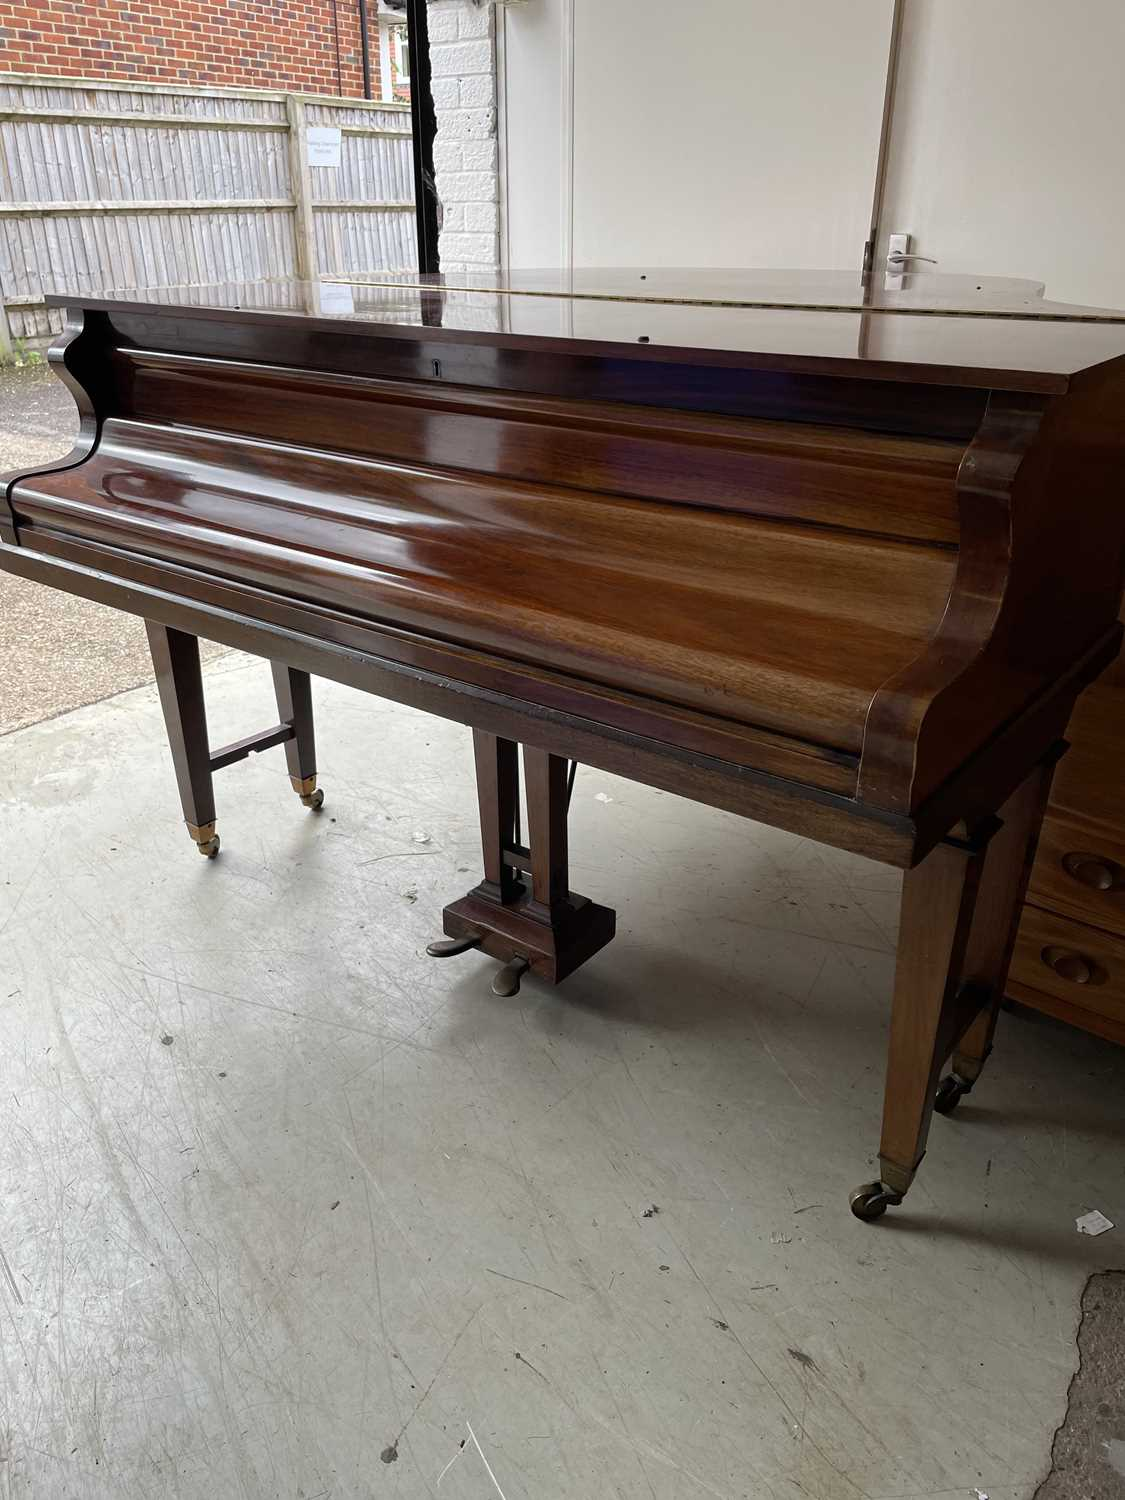 A mahogany cased baby grand piano, by John Strohmenger & Sons, London, 143 cm wide x 101 cm high x - Image 17 of 21